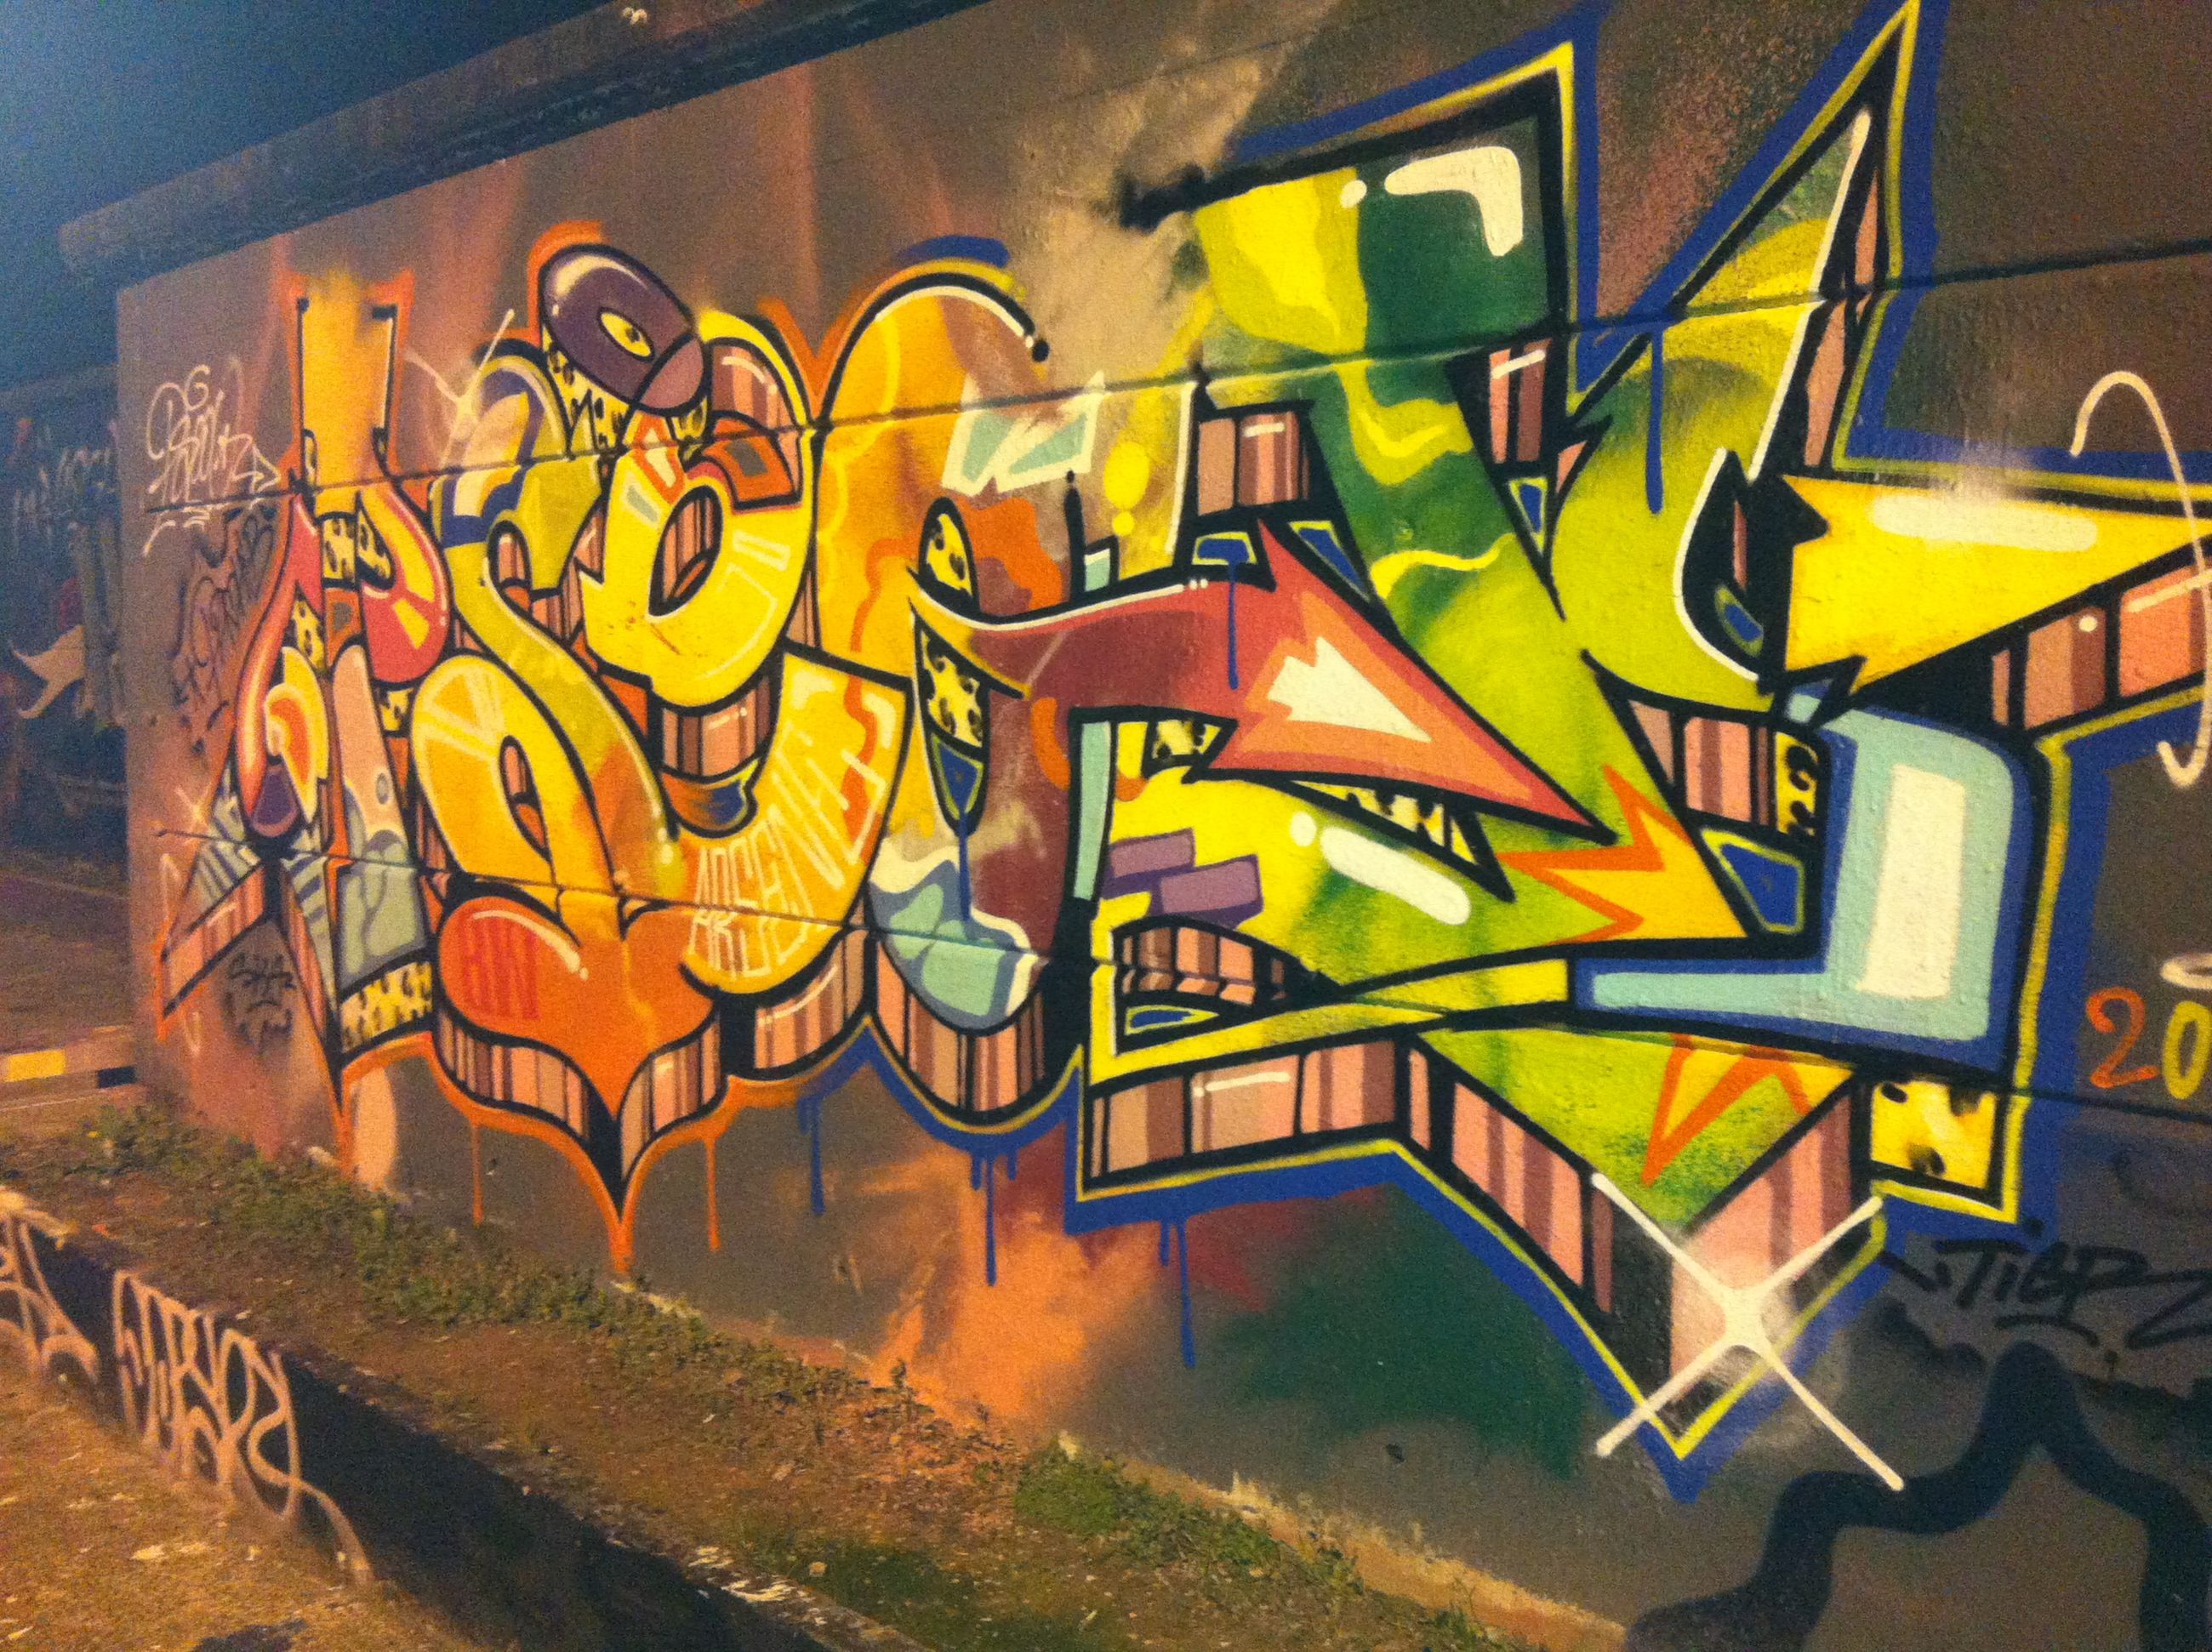 graffiti, yellow, art, creativity, wall - building feature, built structure, art and craft, architecture, multi colored, street art, building exterior, text, outdoors, day, no people, transportation, sunlight, bicycle, wall, absence